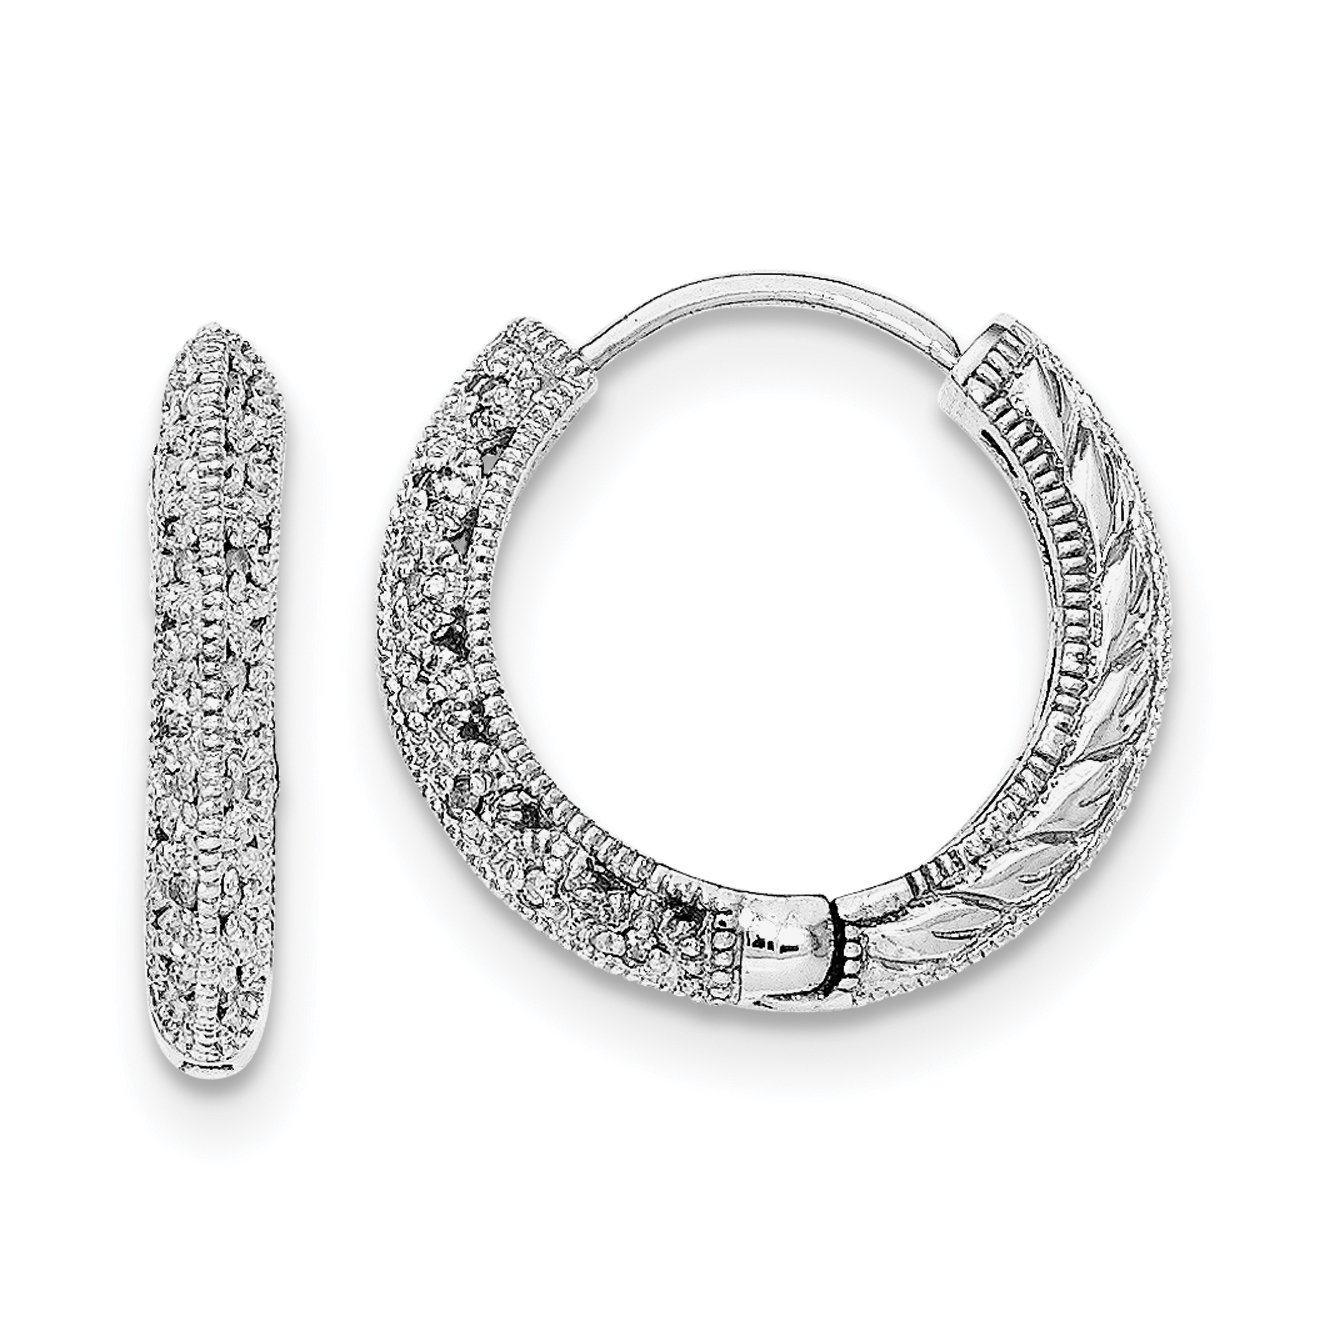 ICE CARATS 925 Sterling Silver Diamond Hinged Hoop Earrings Ear Hoops Set Fine Jewelry Gift Set For Women Heart